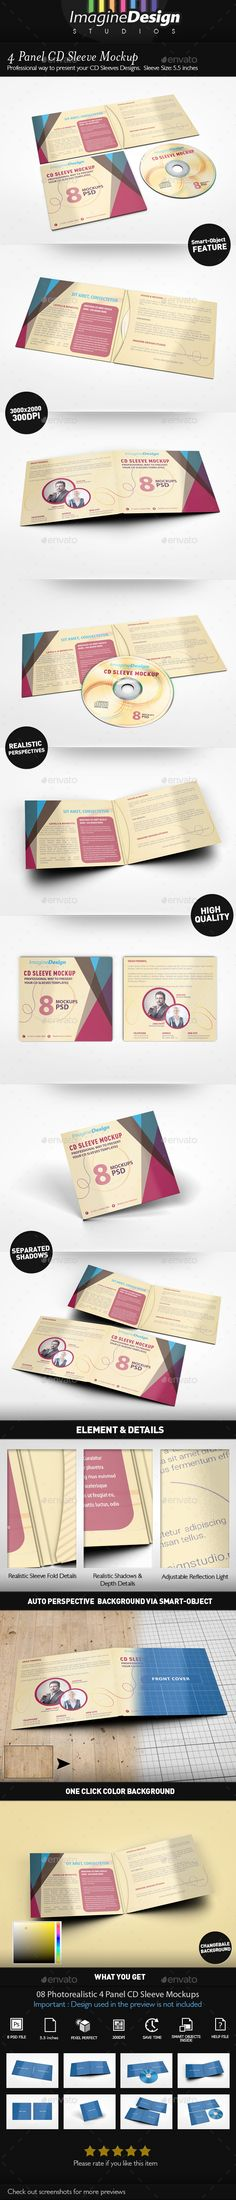 Buy 4 Panel CD Sleeve Mockup by BaGeRa on GraphicRiver. 4 Panel CD Sleeve Mockup Show your CD Sleeve with style! Create a Photorealistic CD Sleeve Mockup display in few seco. Cd Cover, Album Covers, Macbook Mockup, Company Profile Design, Information Graphics, Business Card Mock Up, Letter Logo, Print Templates, Flyer Template